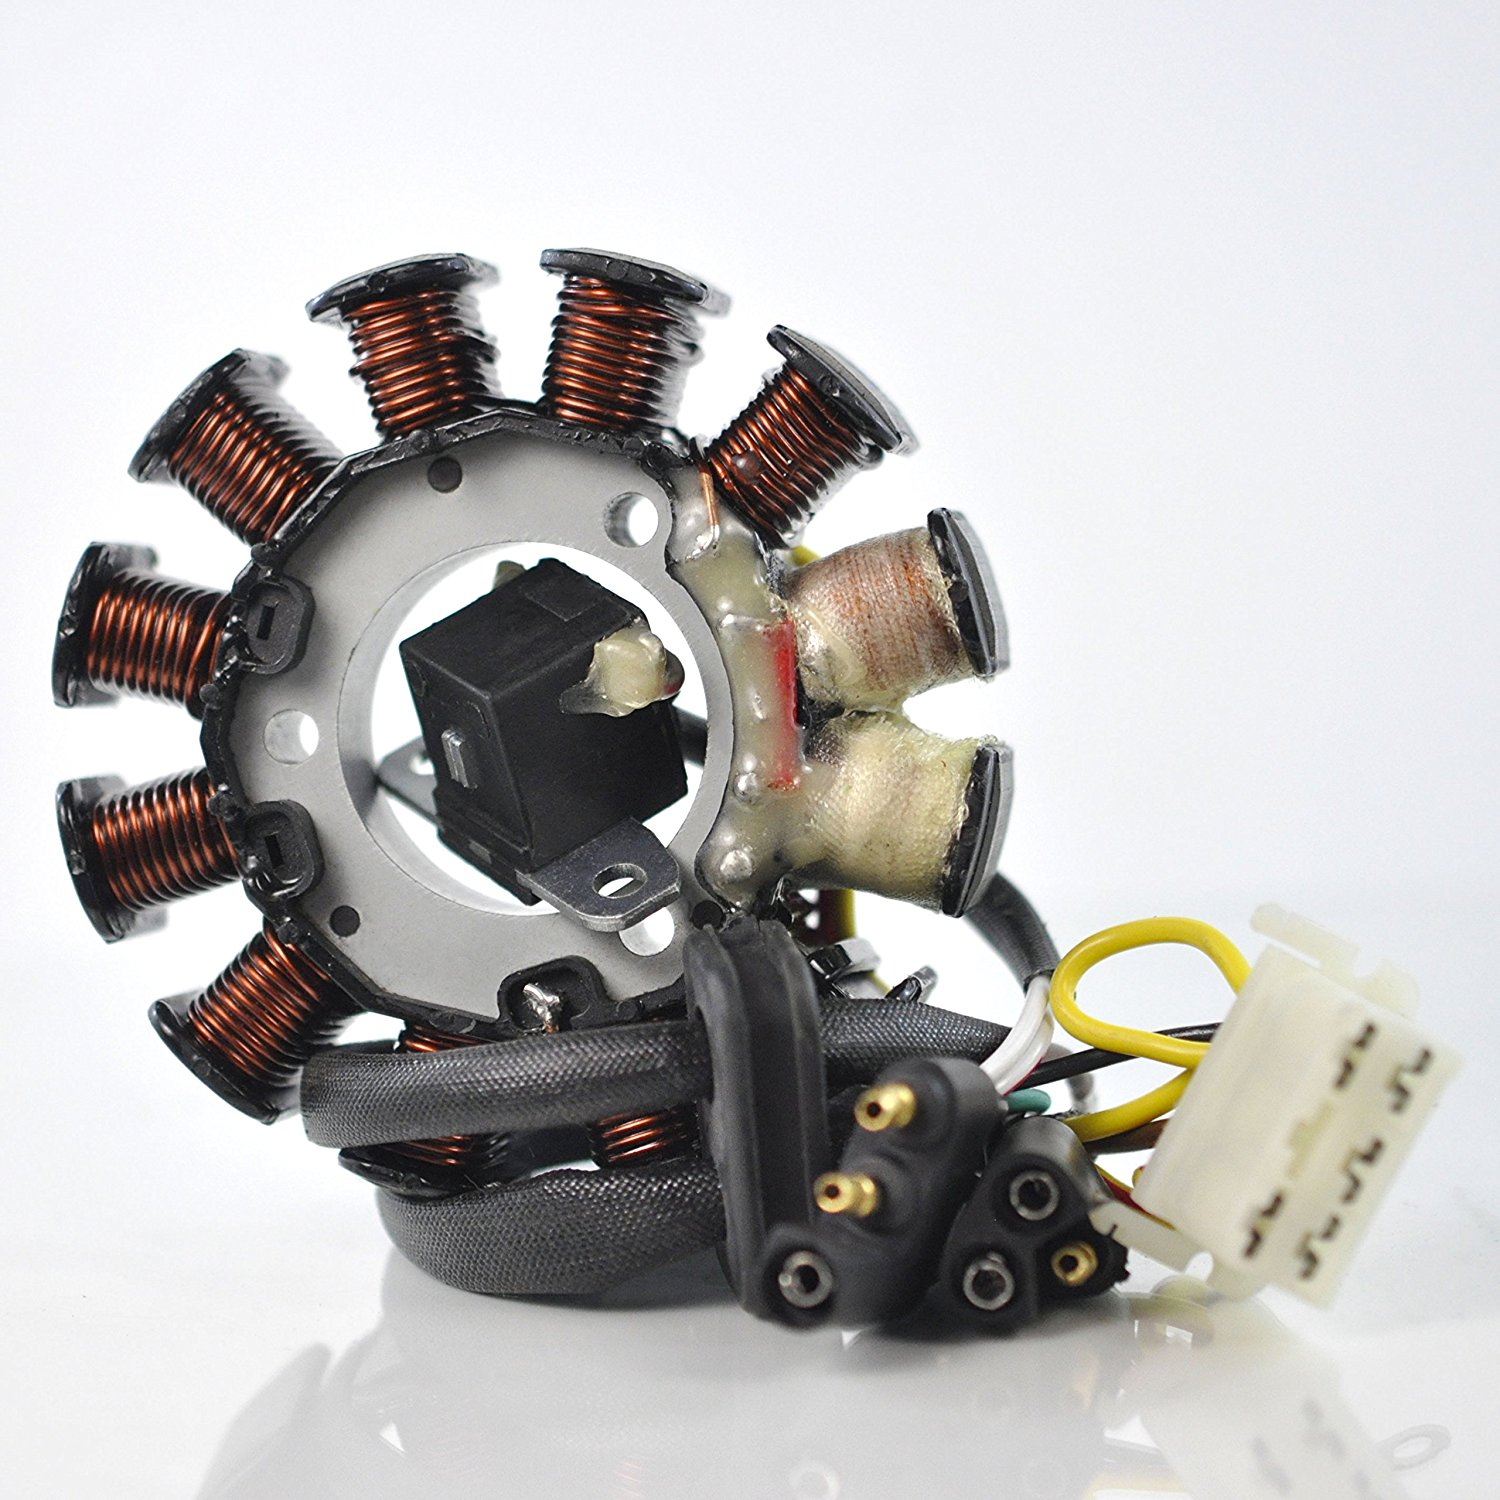 Stator For Polaris XLT SP Classic XCR Ultra 600 680 700 800 1998 1999 2000 2001 2002 2003 OEM Repl.# 3085614 3085601 3085602 3085603 3086147